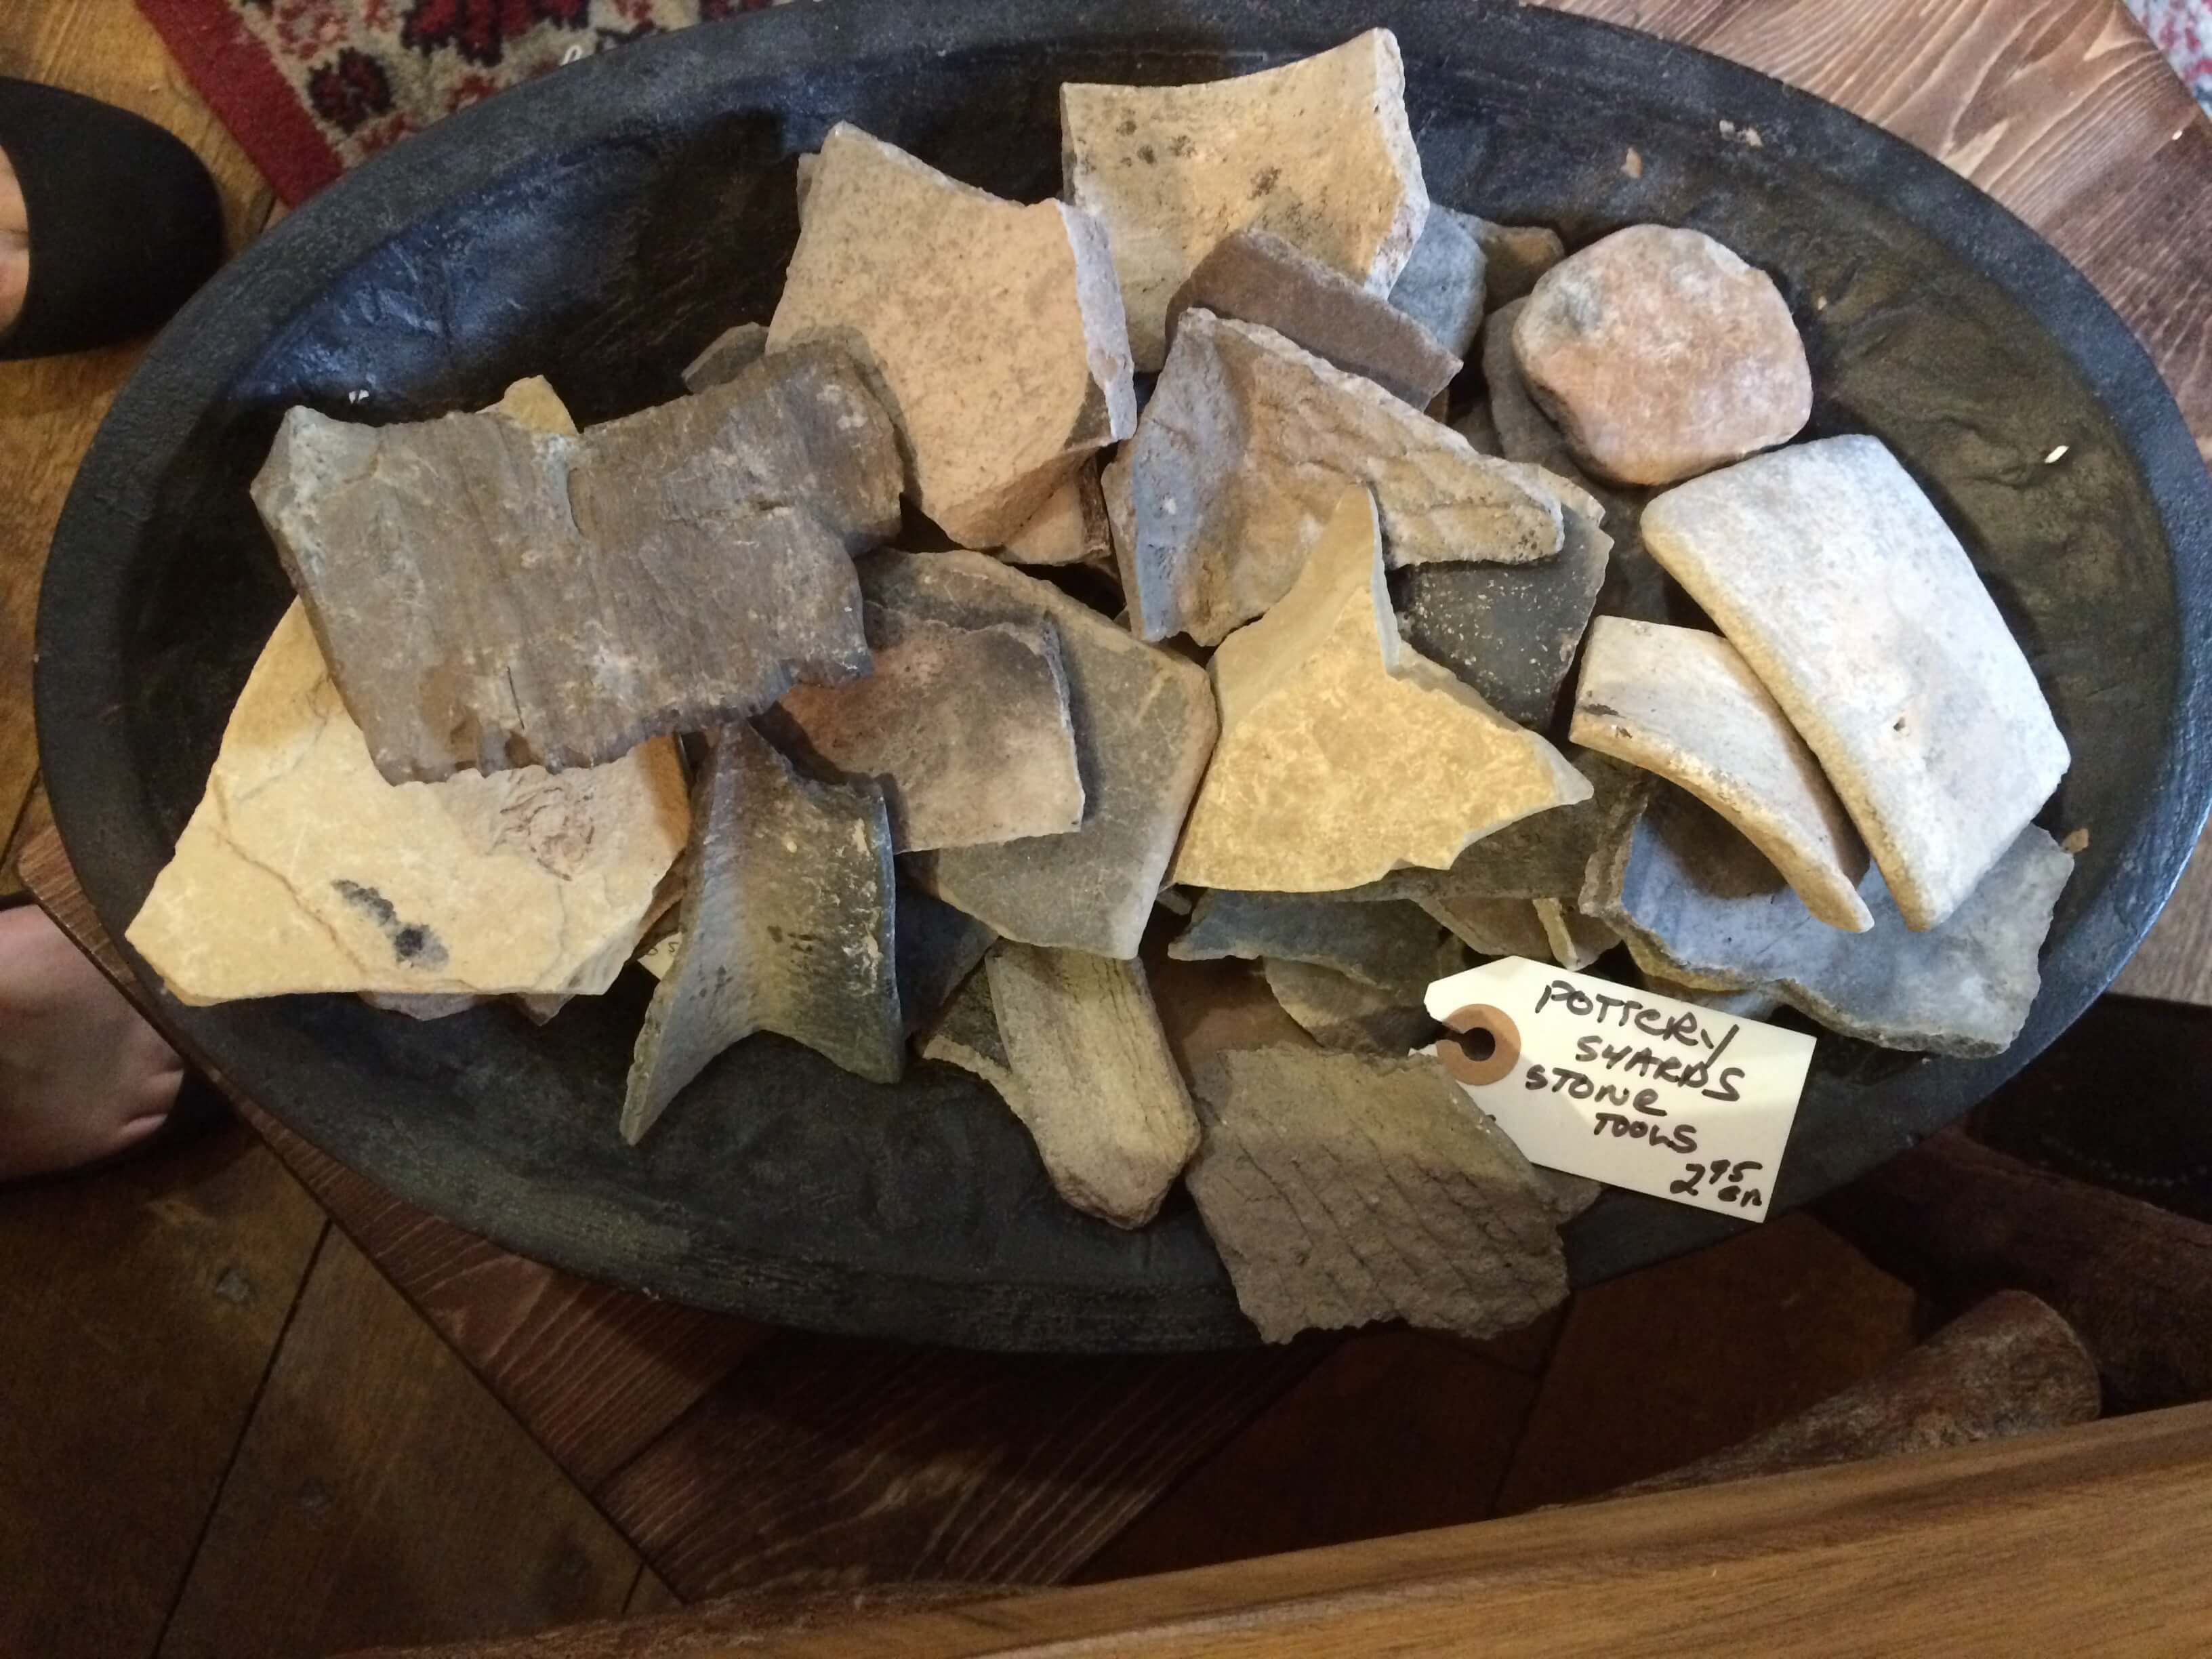 Pottery sherds and projectile points